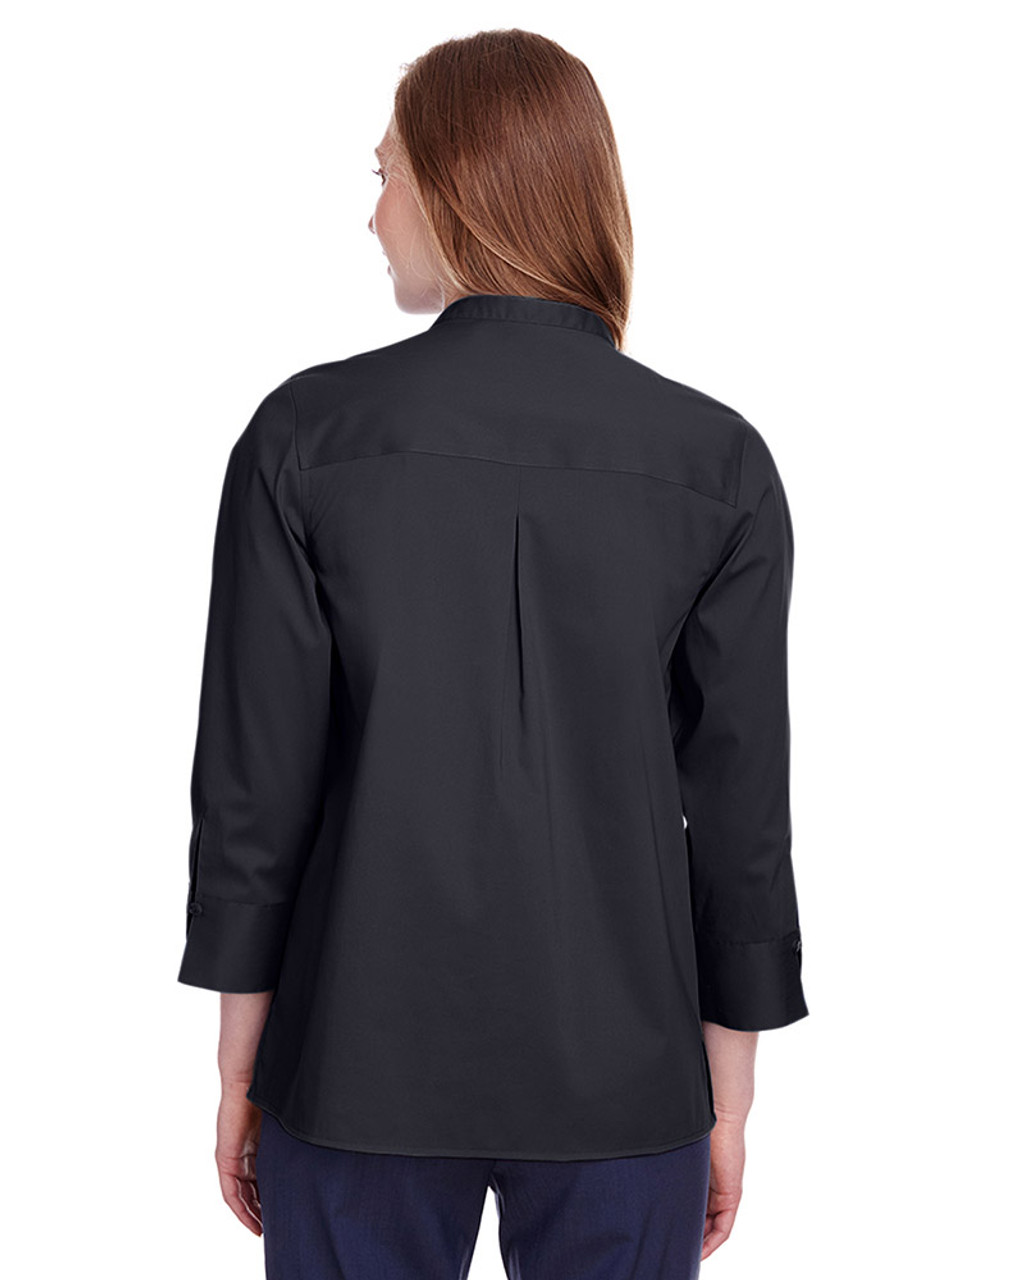 Black - back, DG560W Devon & Jones Ladies' Crown Collection™ Stretch Broadcloth 3/4 Sleeve Blouse | Blankclothing.ca